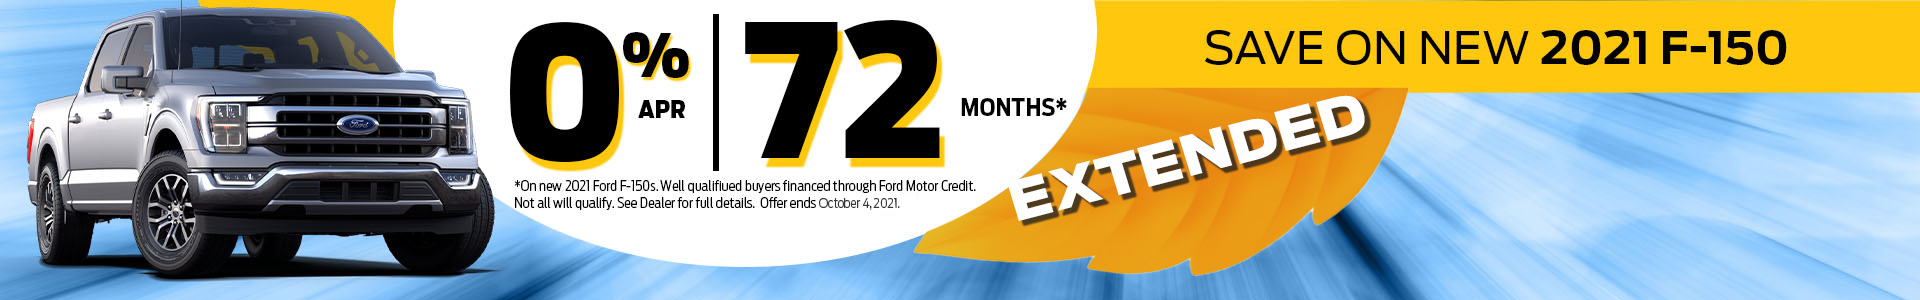 0% APR for 72 Months Offer on 2021 F-150s extended